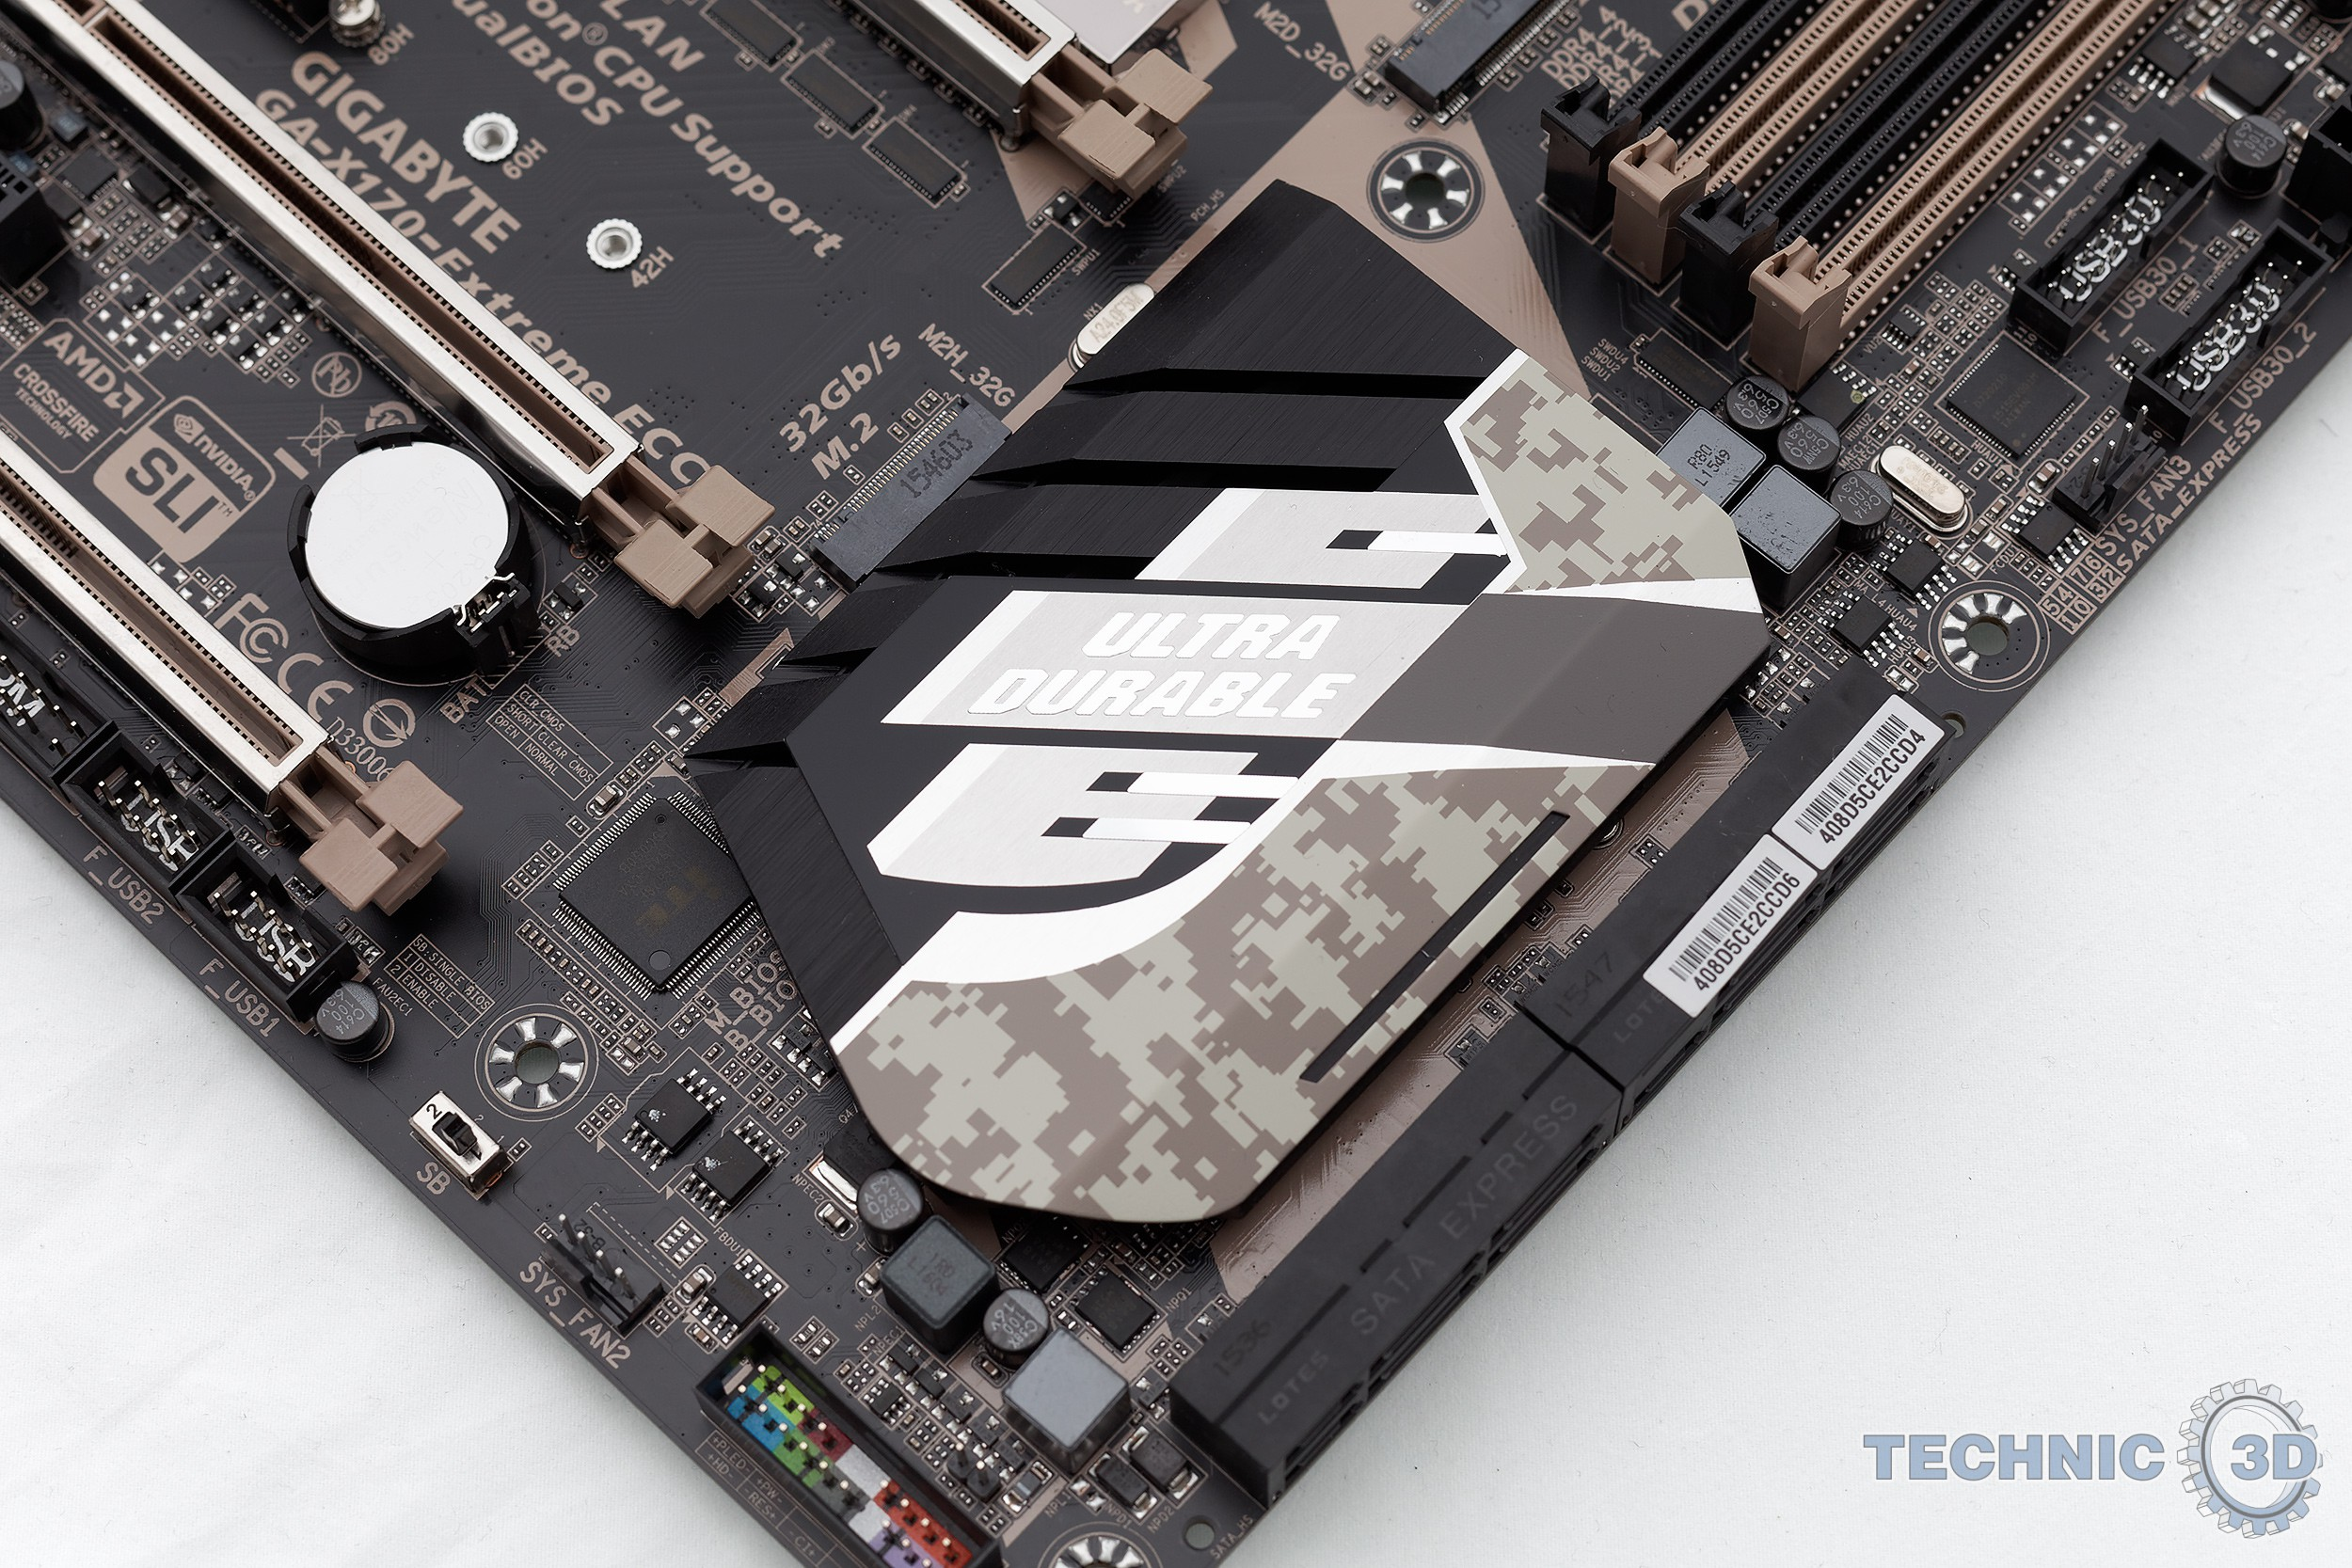 Gigabyte X170-Extreme ECC Mainboard im Test | Review | Technic3D